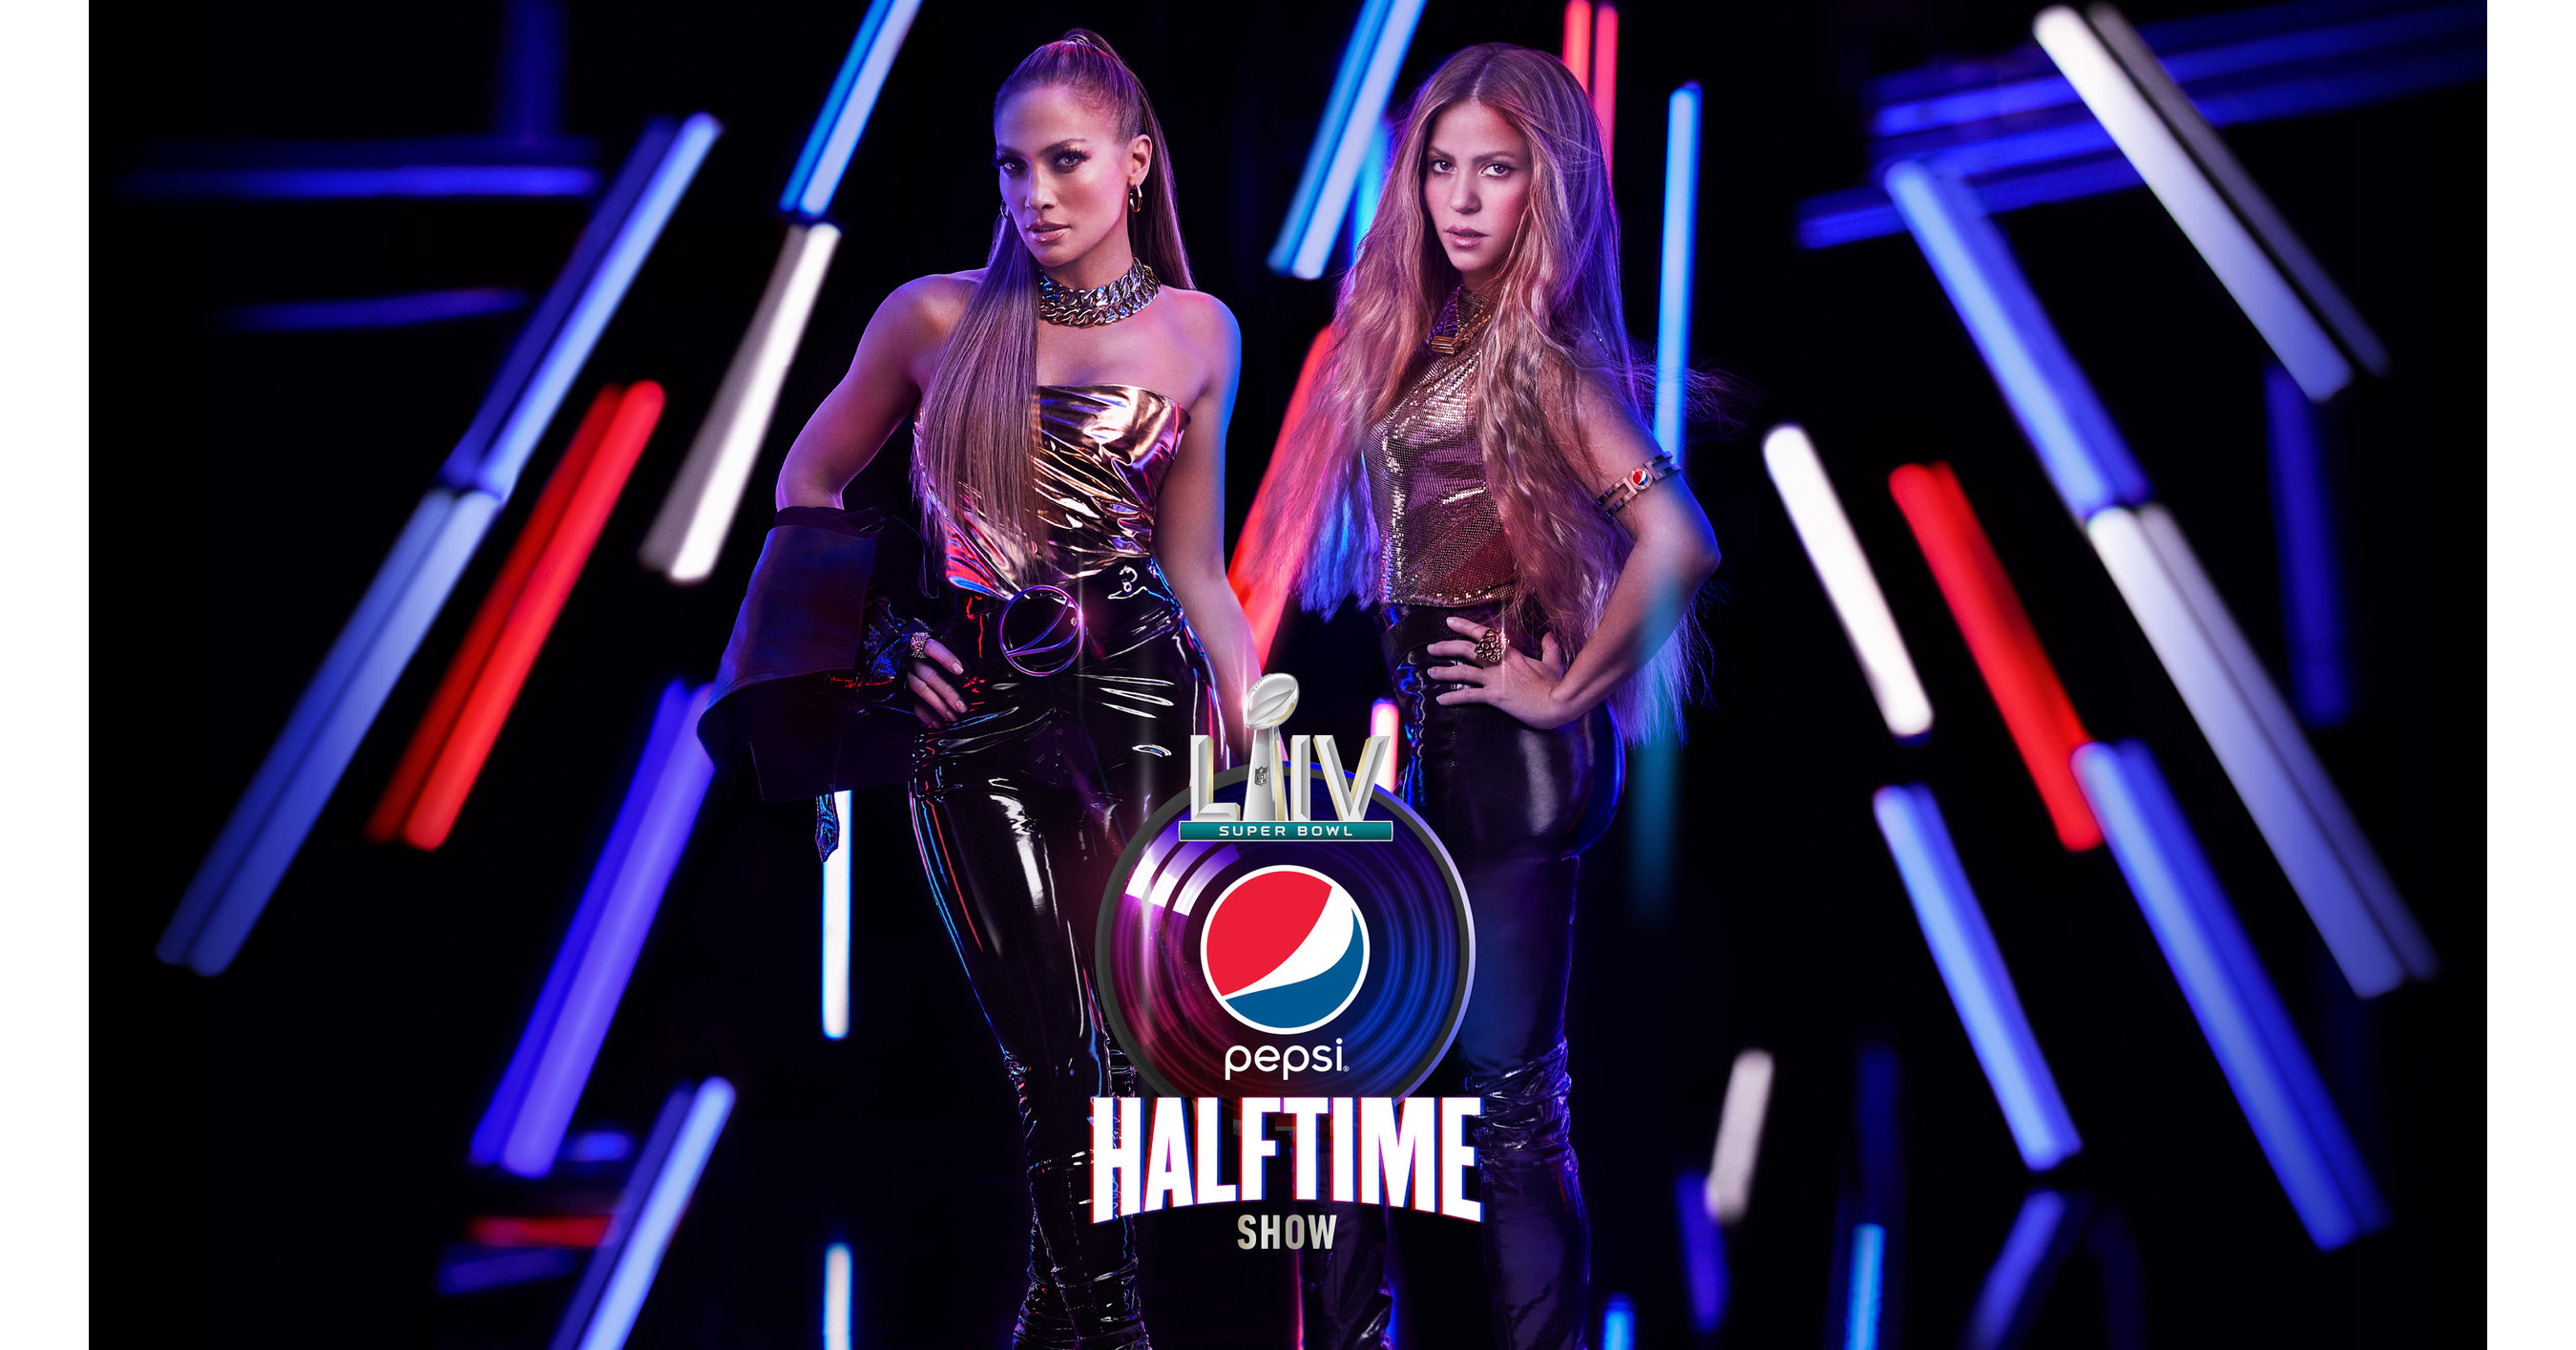 Super Bowl LIV Halftime Show - Jennifer Lopez and Shakira